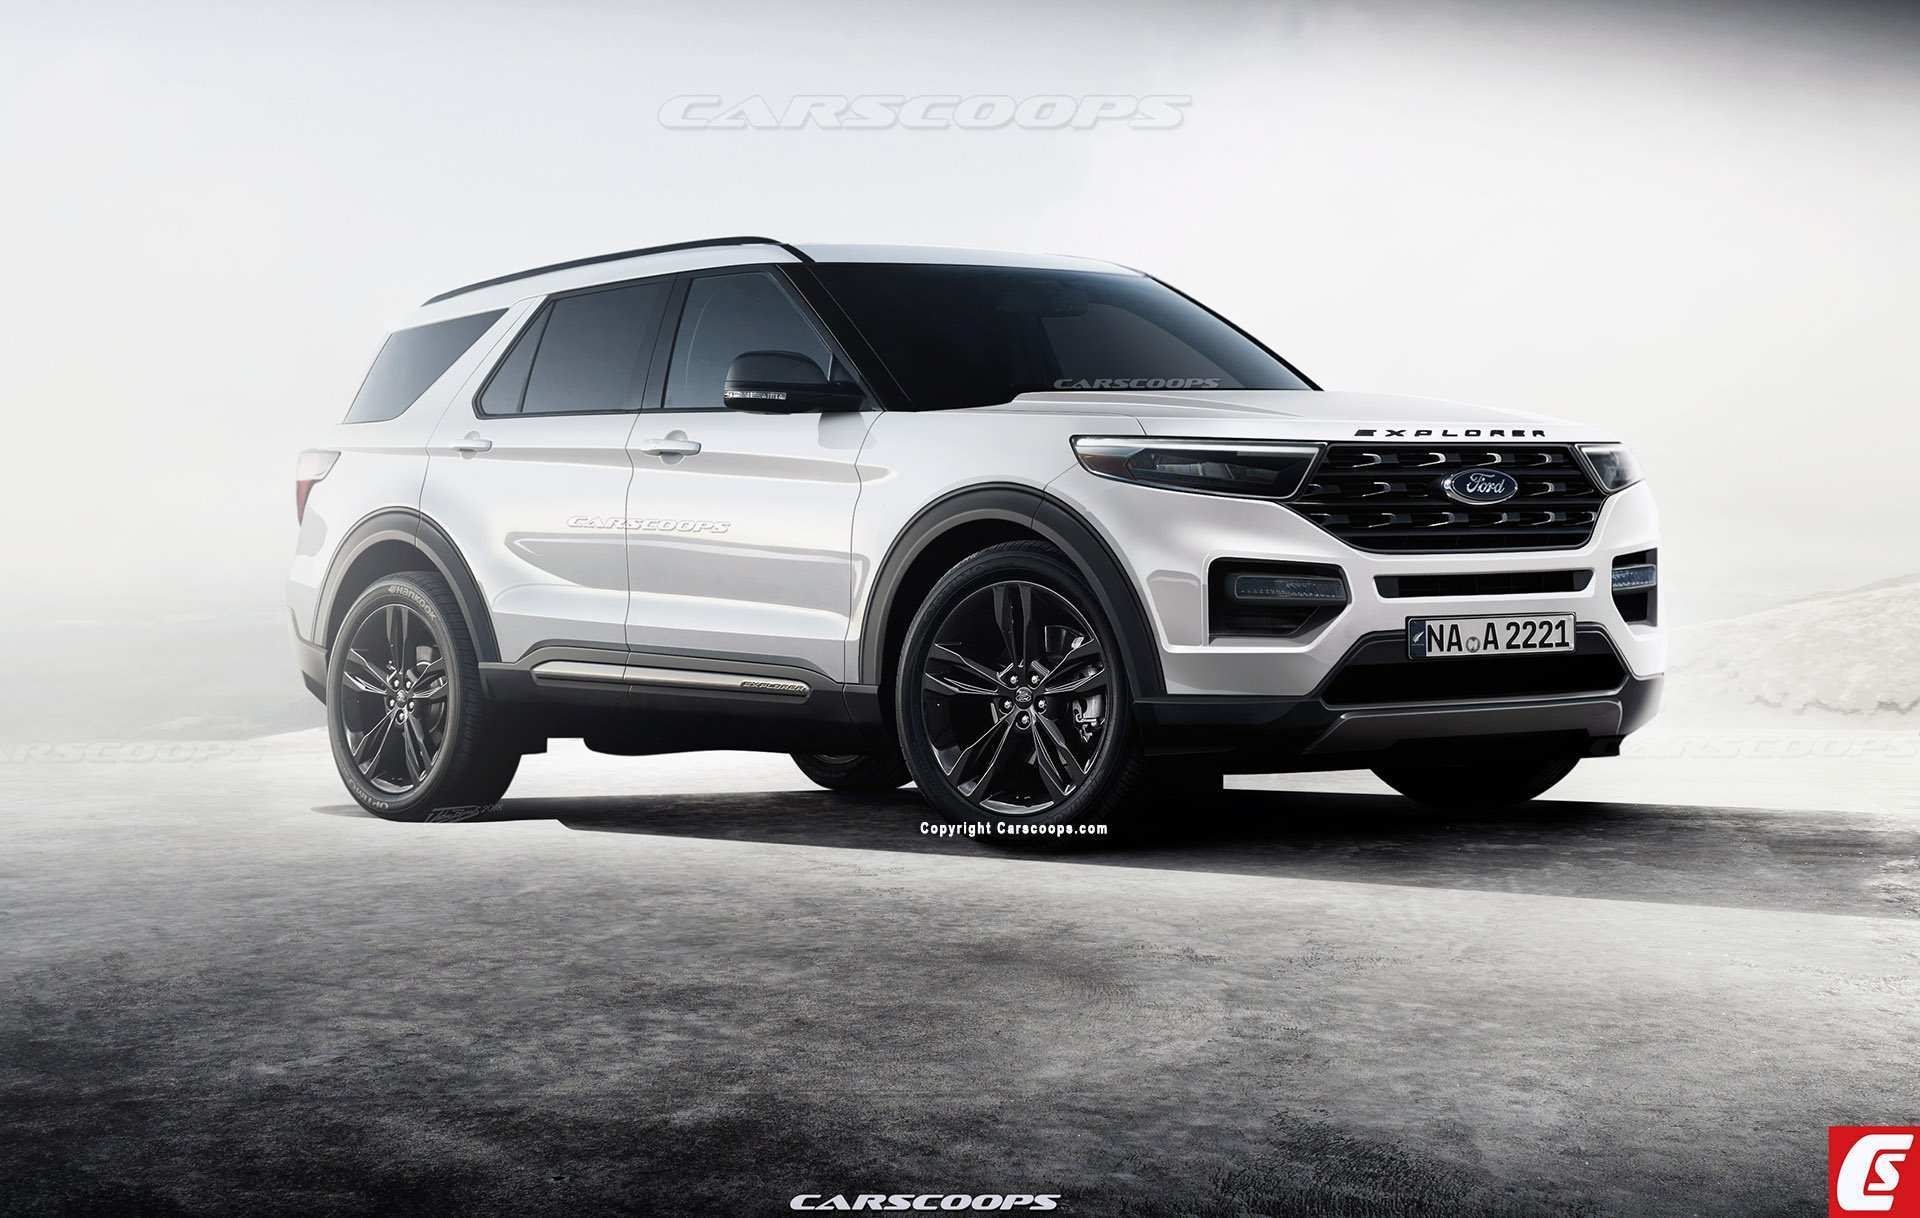 42 New Ford New Explorer 2020 Exterior and Interior for Ford New Explorer 2020